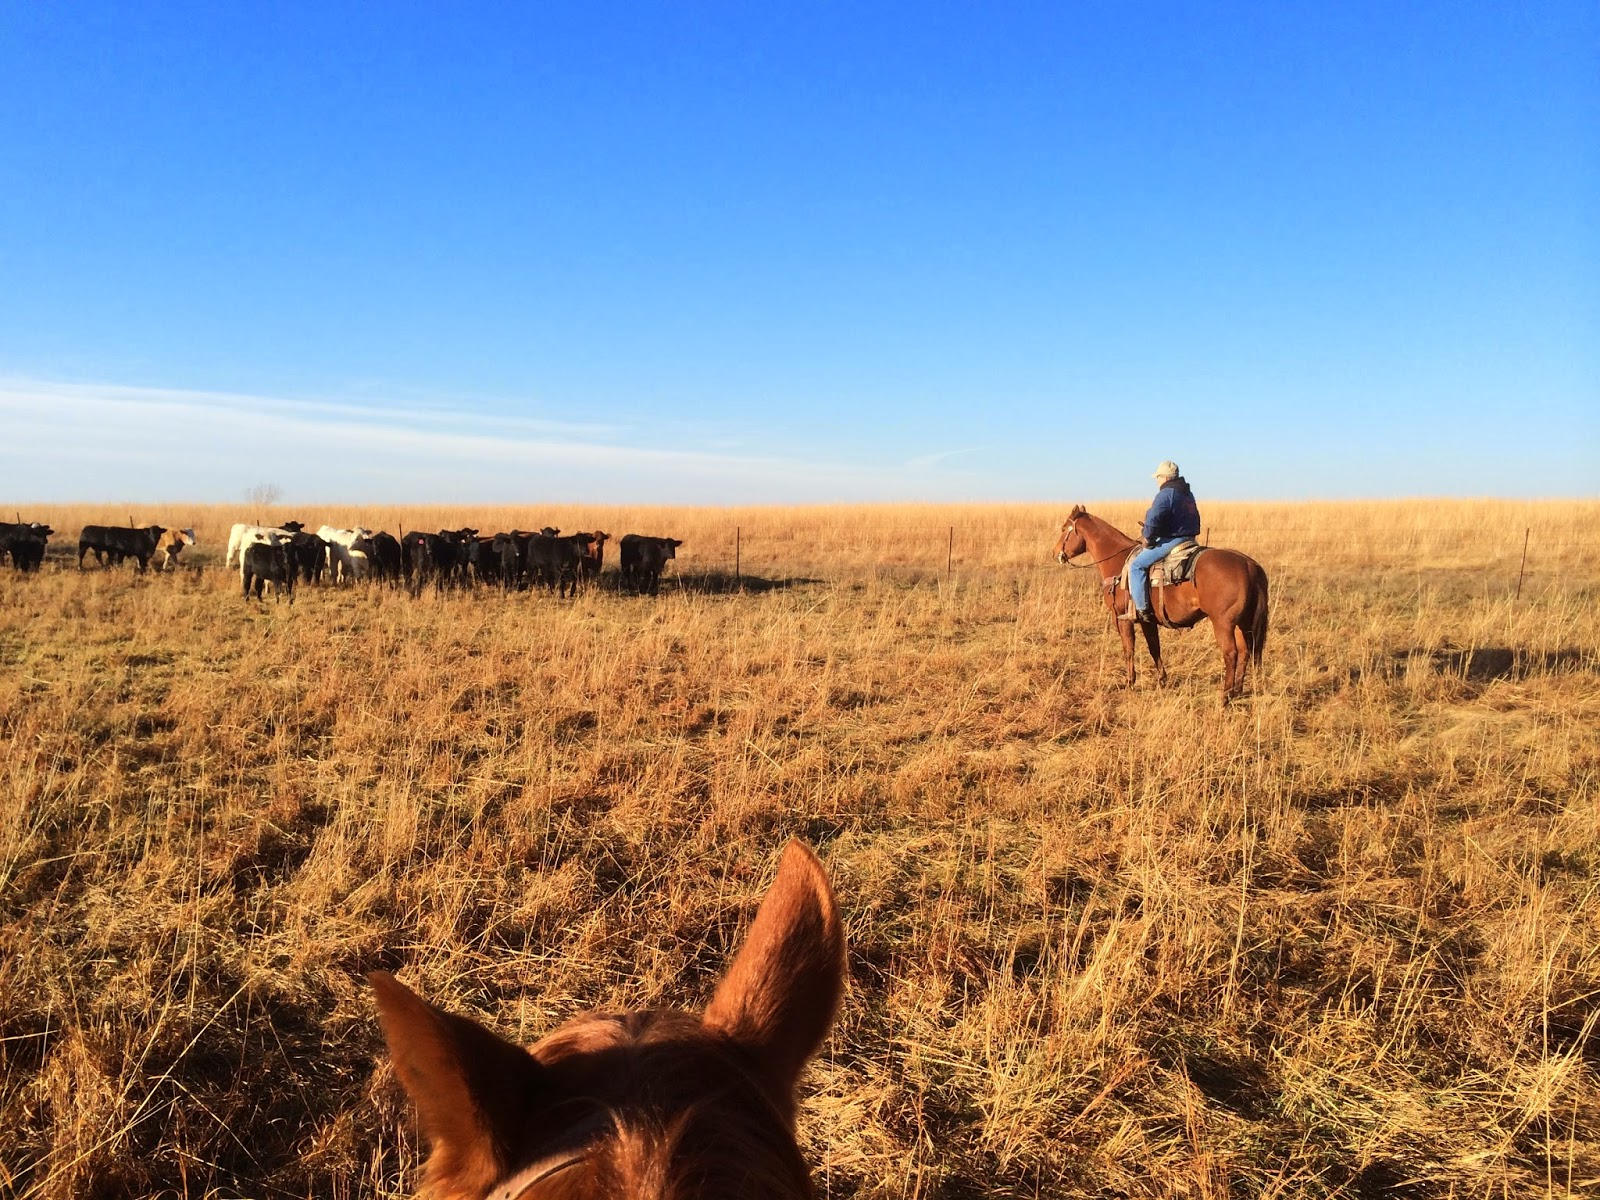 Rodeo and ranching are important components of my life